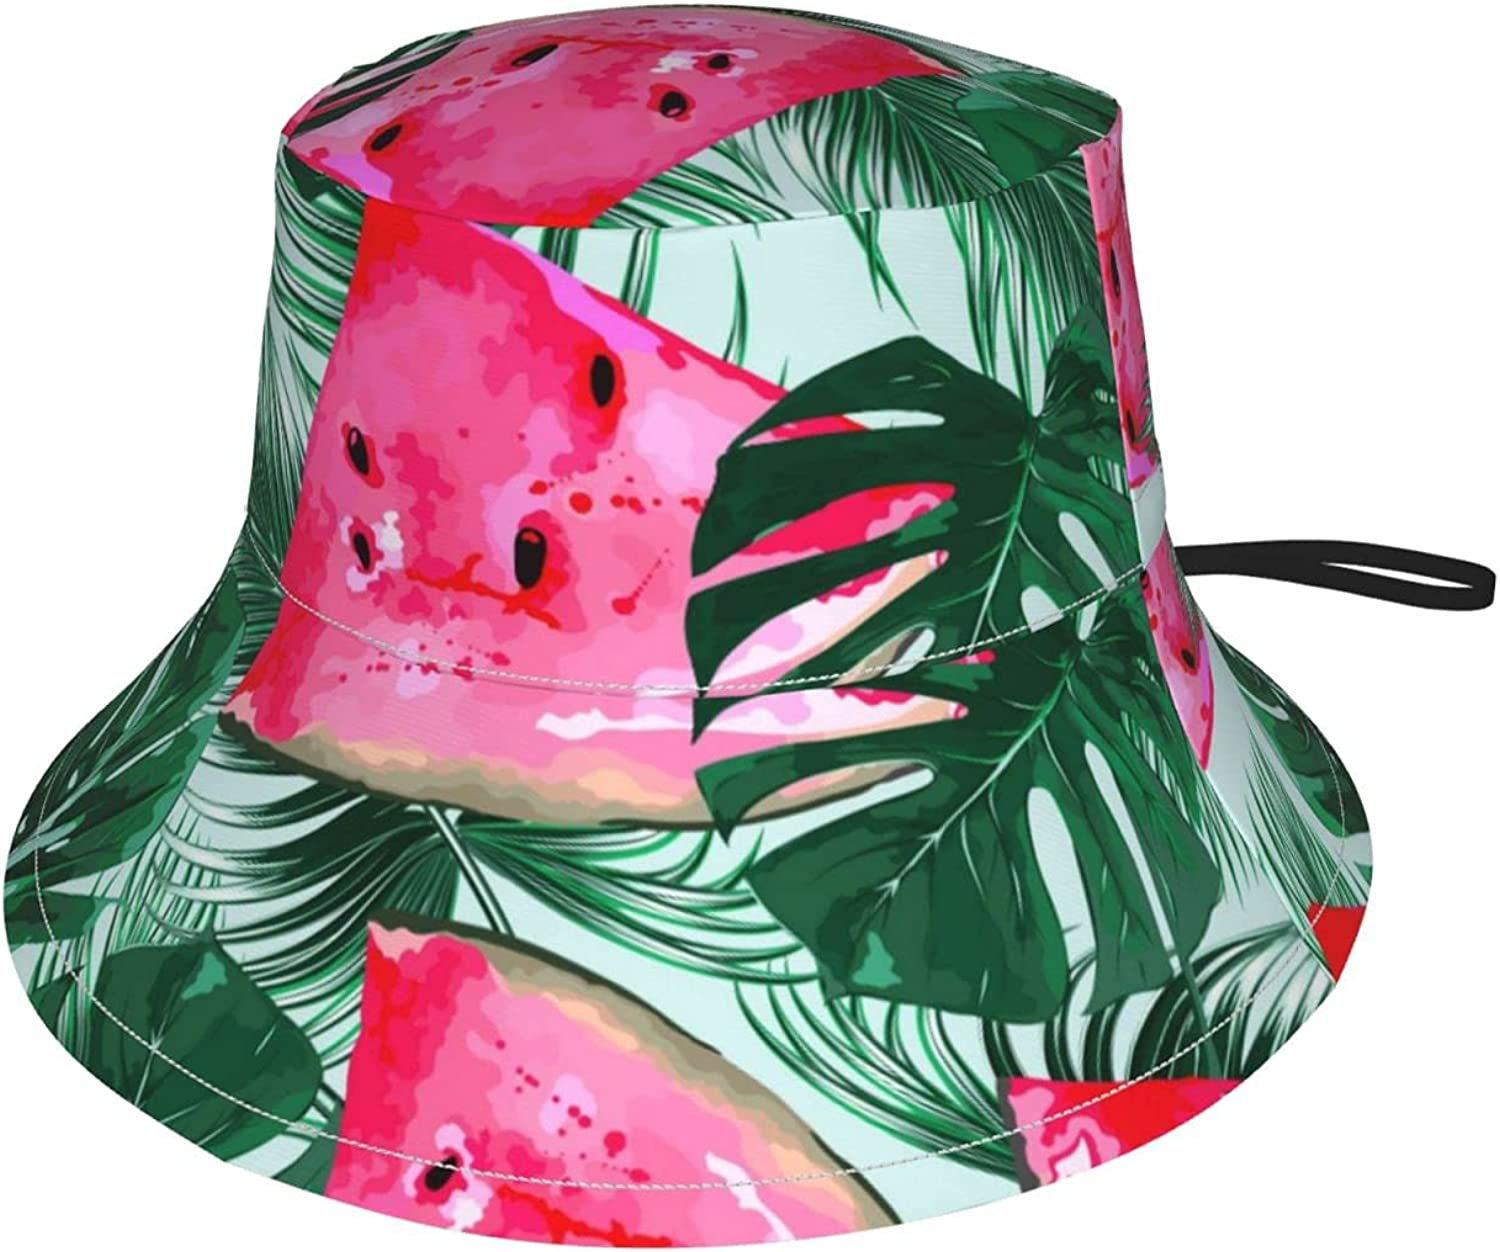 Summer Watermelon Tropical Palm Leaves Be Sun 40% OFF Cheap Sale Hat High quality Fishing Bucket